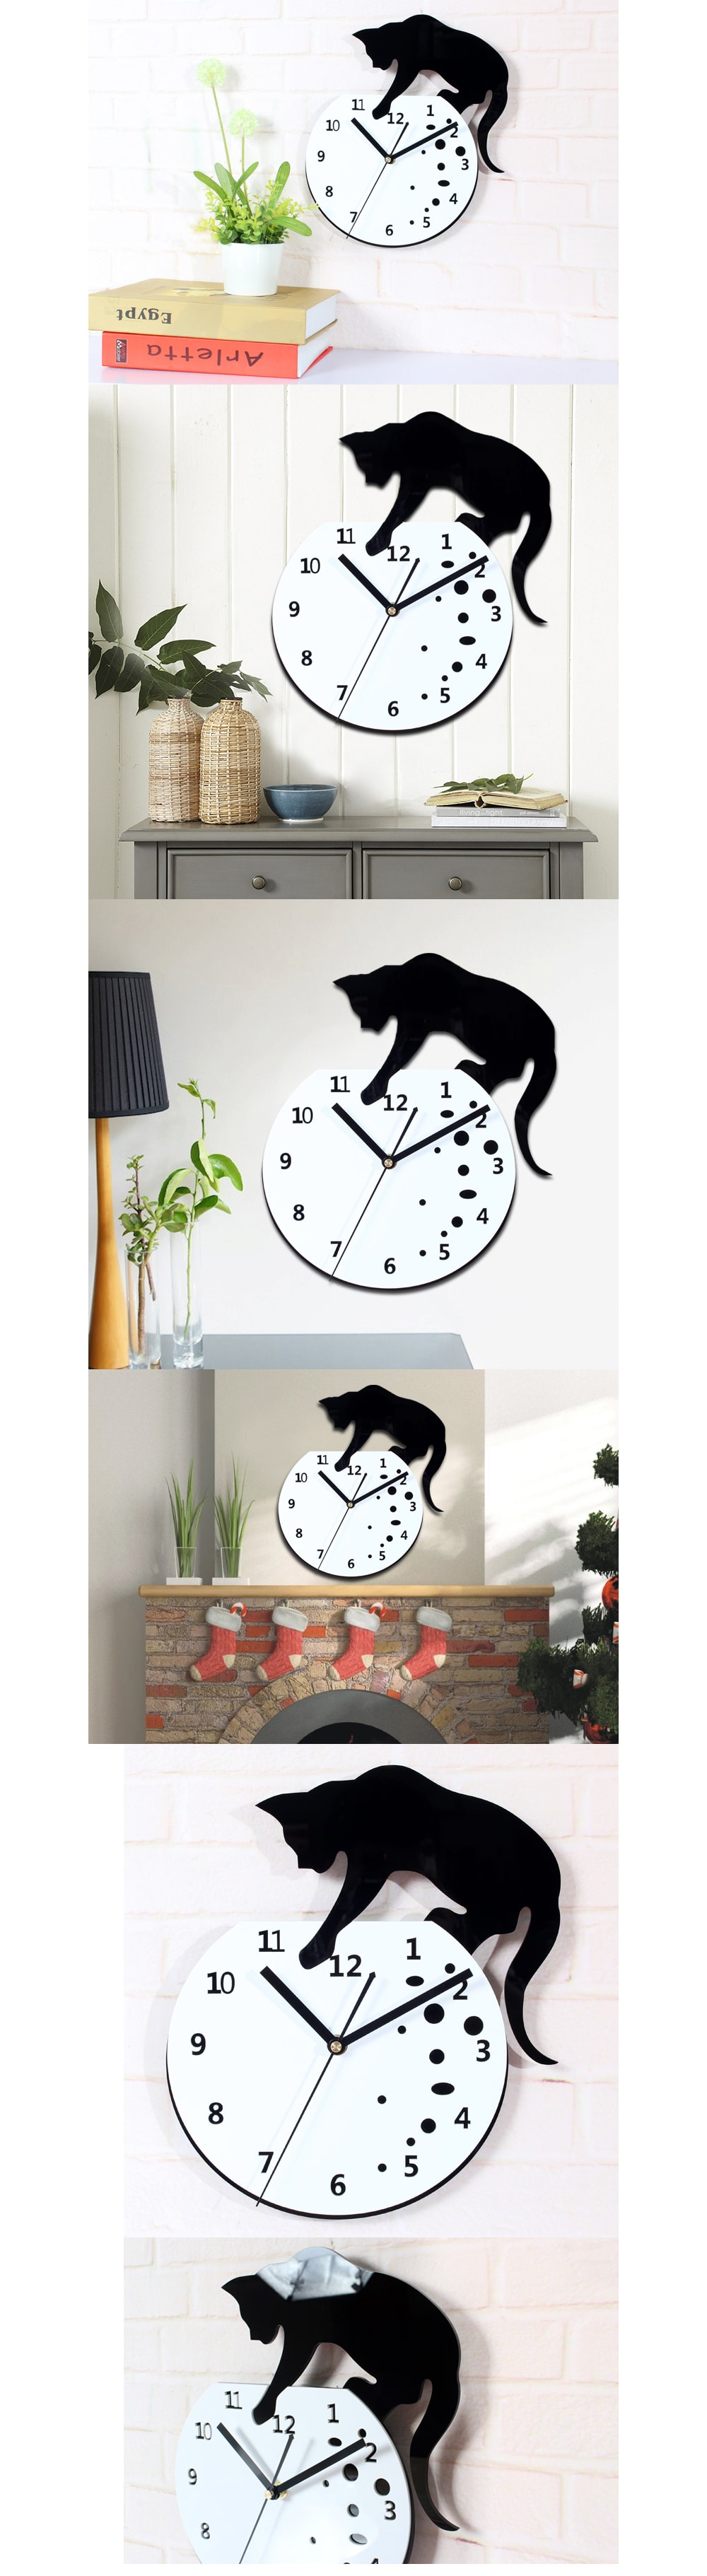 Cat Fish Wall Stickers Clock Add it to Your Cat Collection